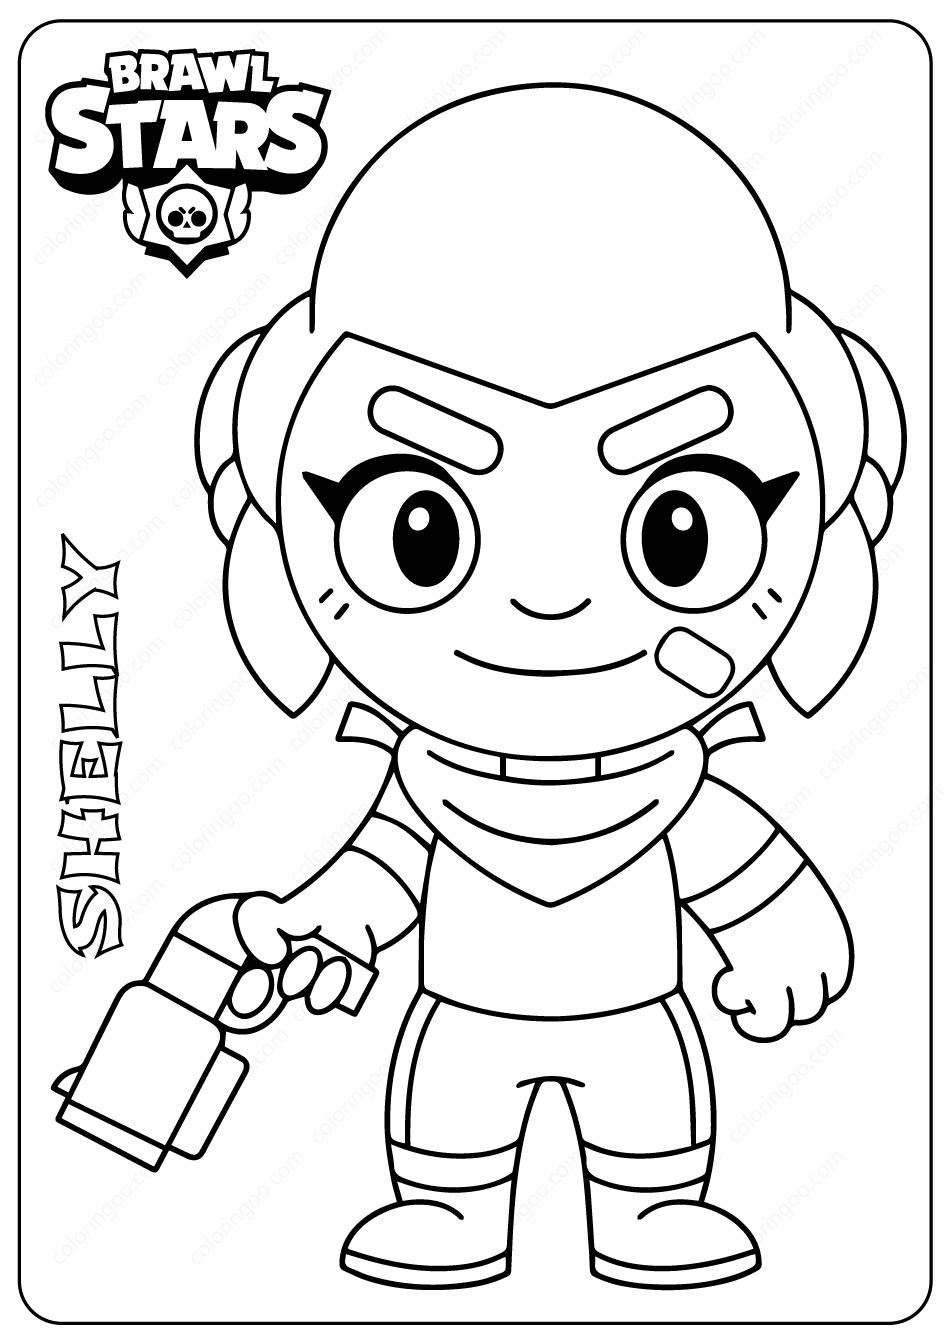 Printable Brawl Stars Shelly Pdf Coloring Pages Star Coloring Pages Coloring Pages Shelly